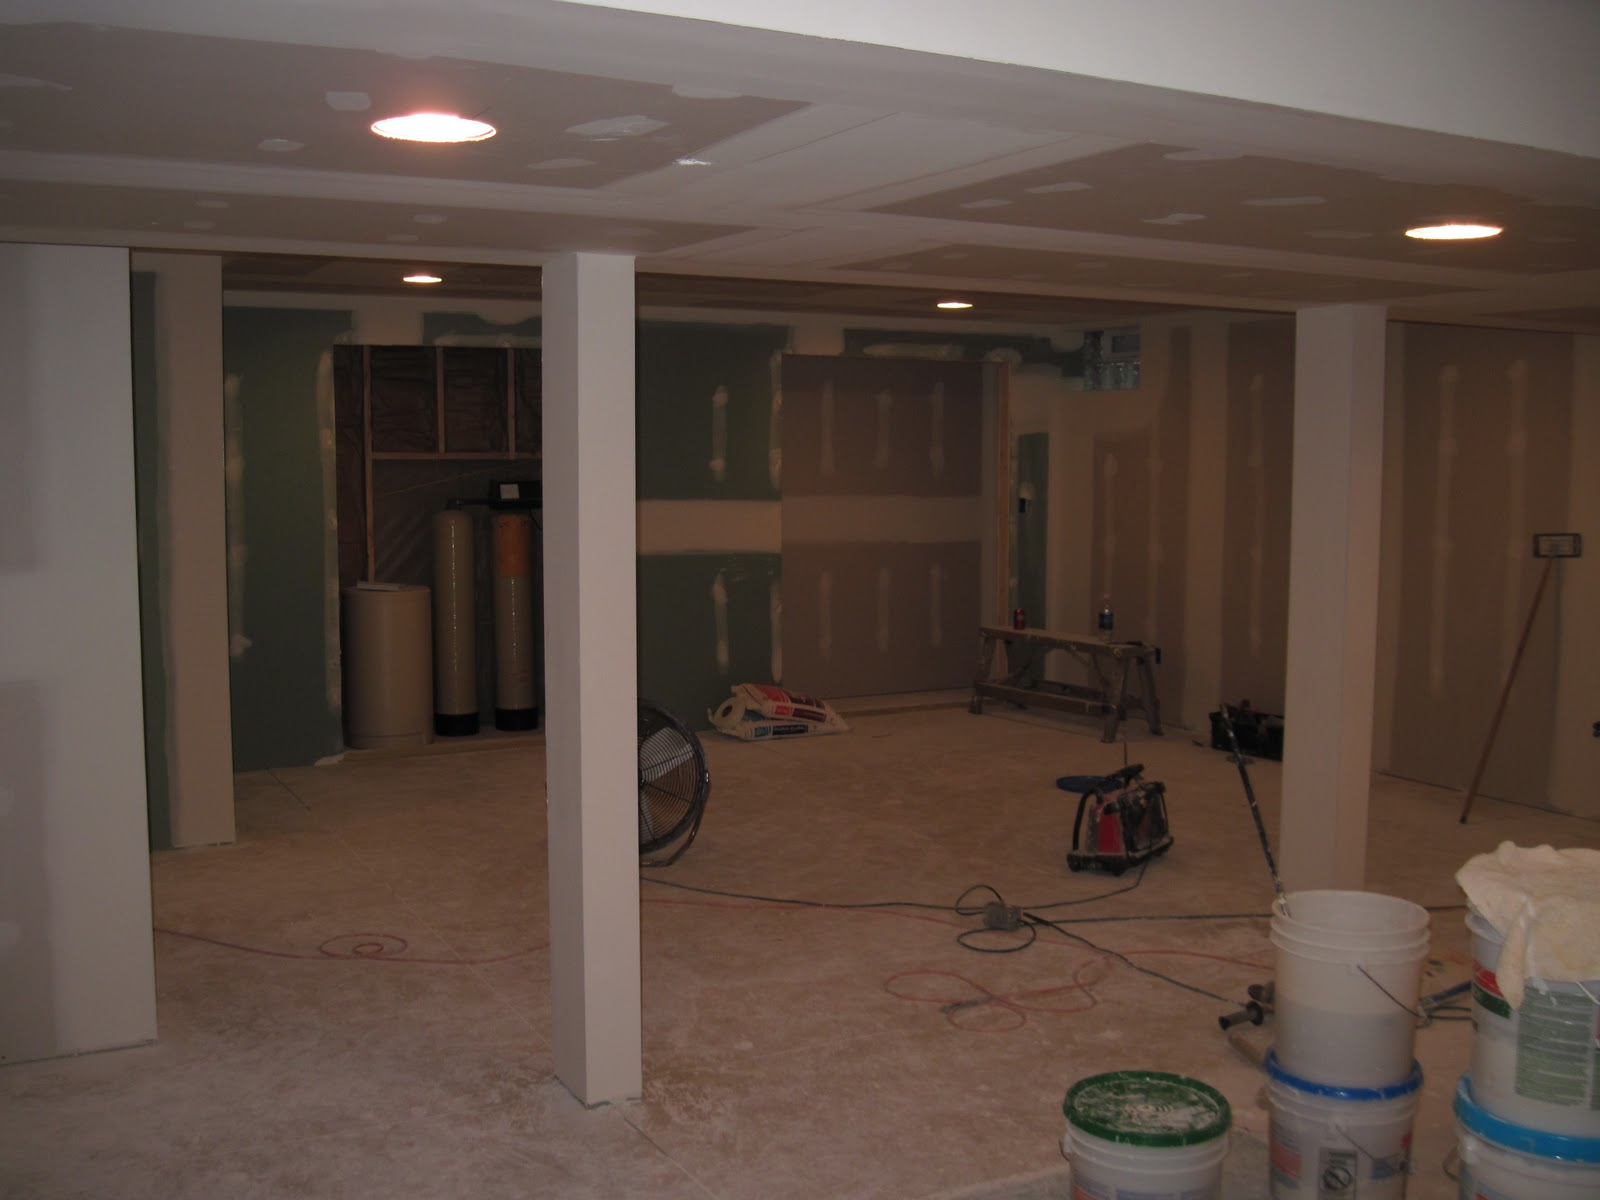 basement drywall finishing with knockdown ceiling texture finished